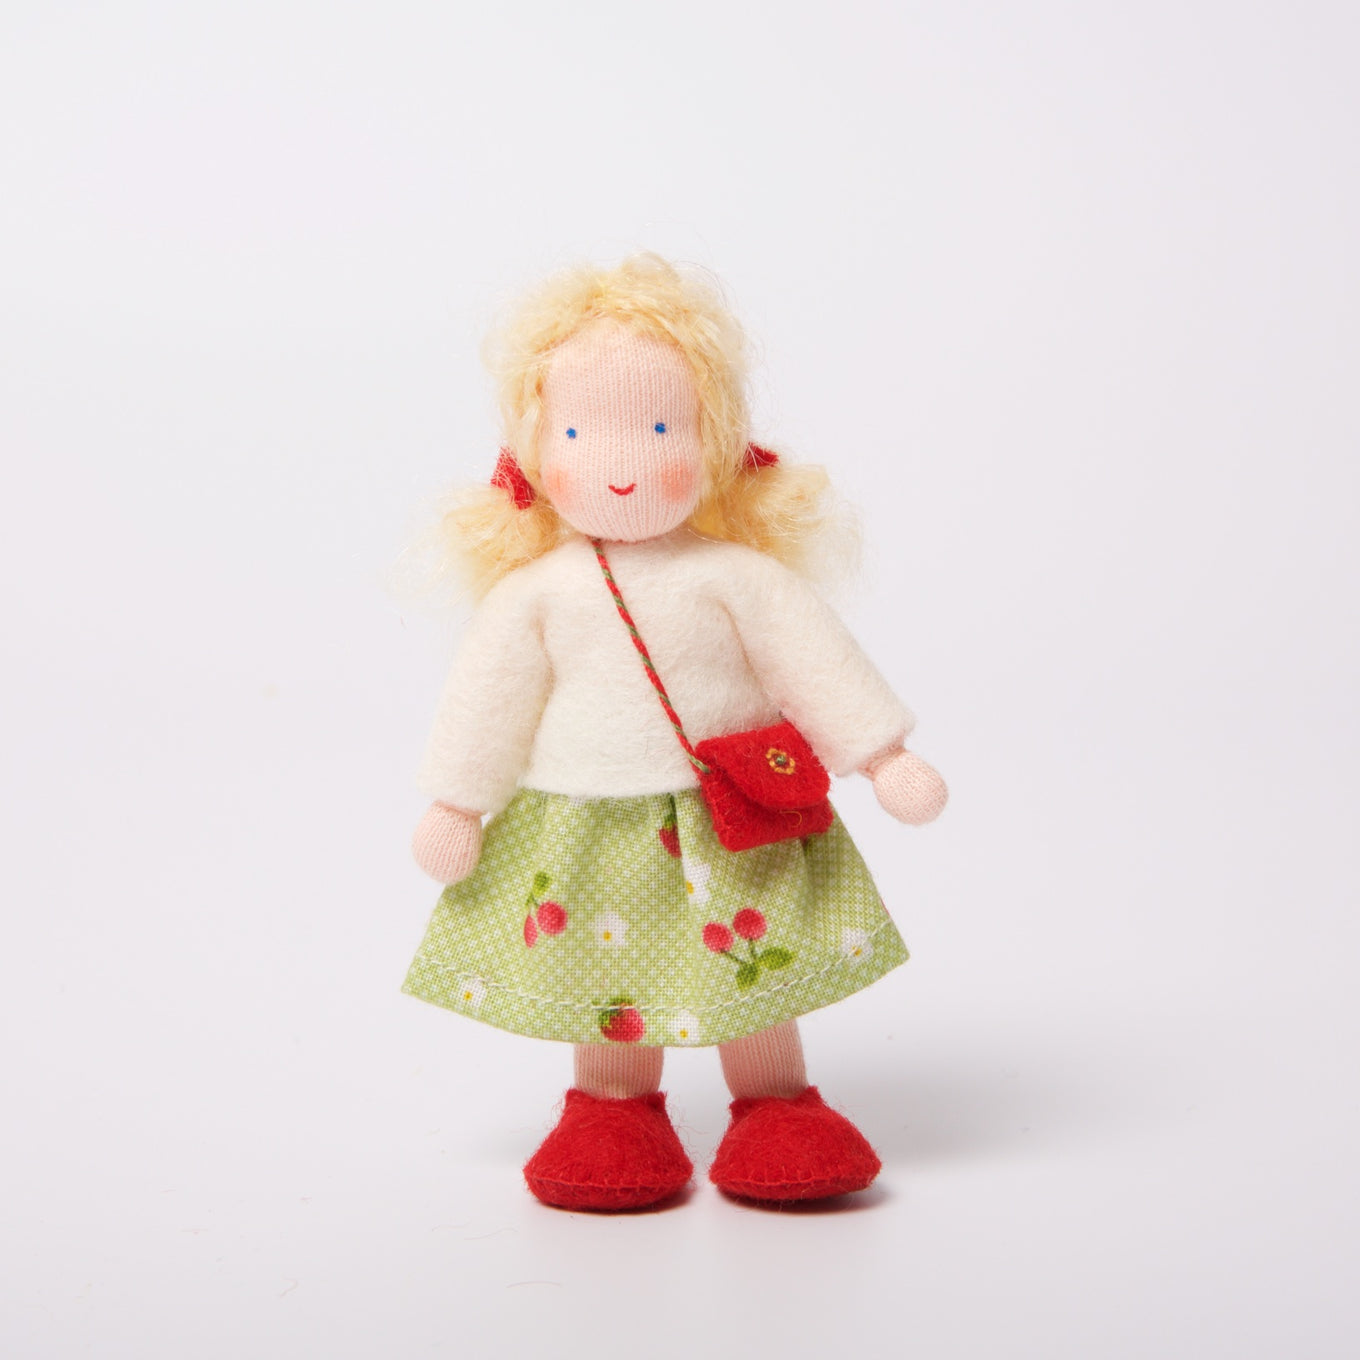 Dolls House | Girl With Blond Hair